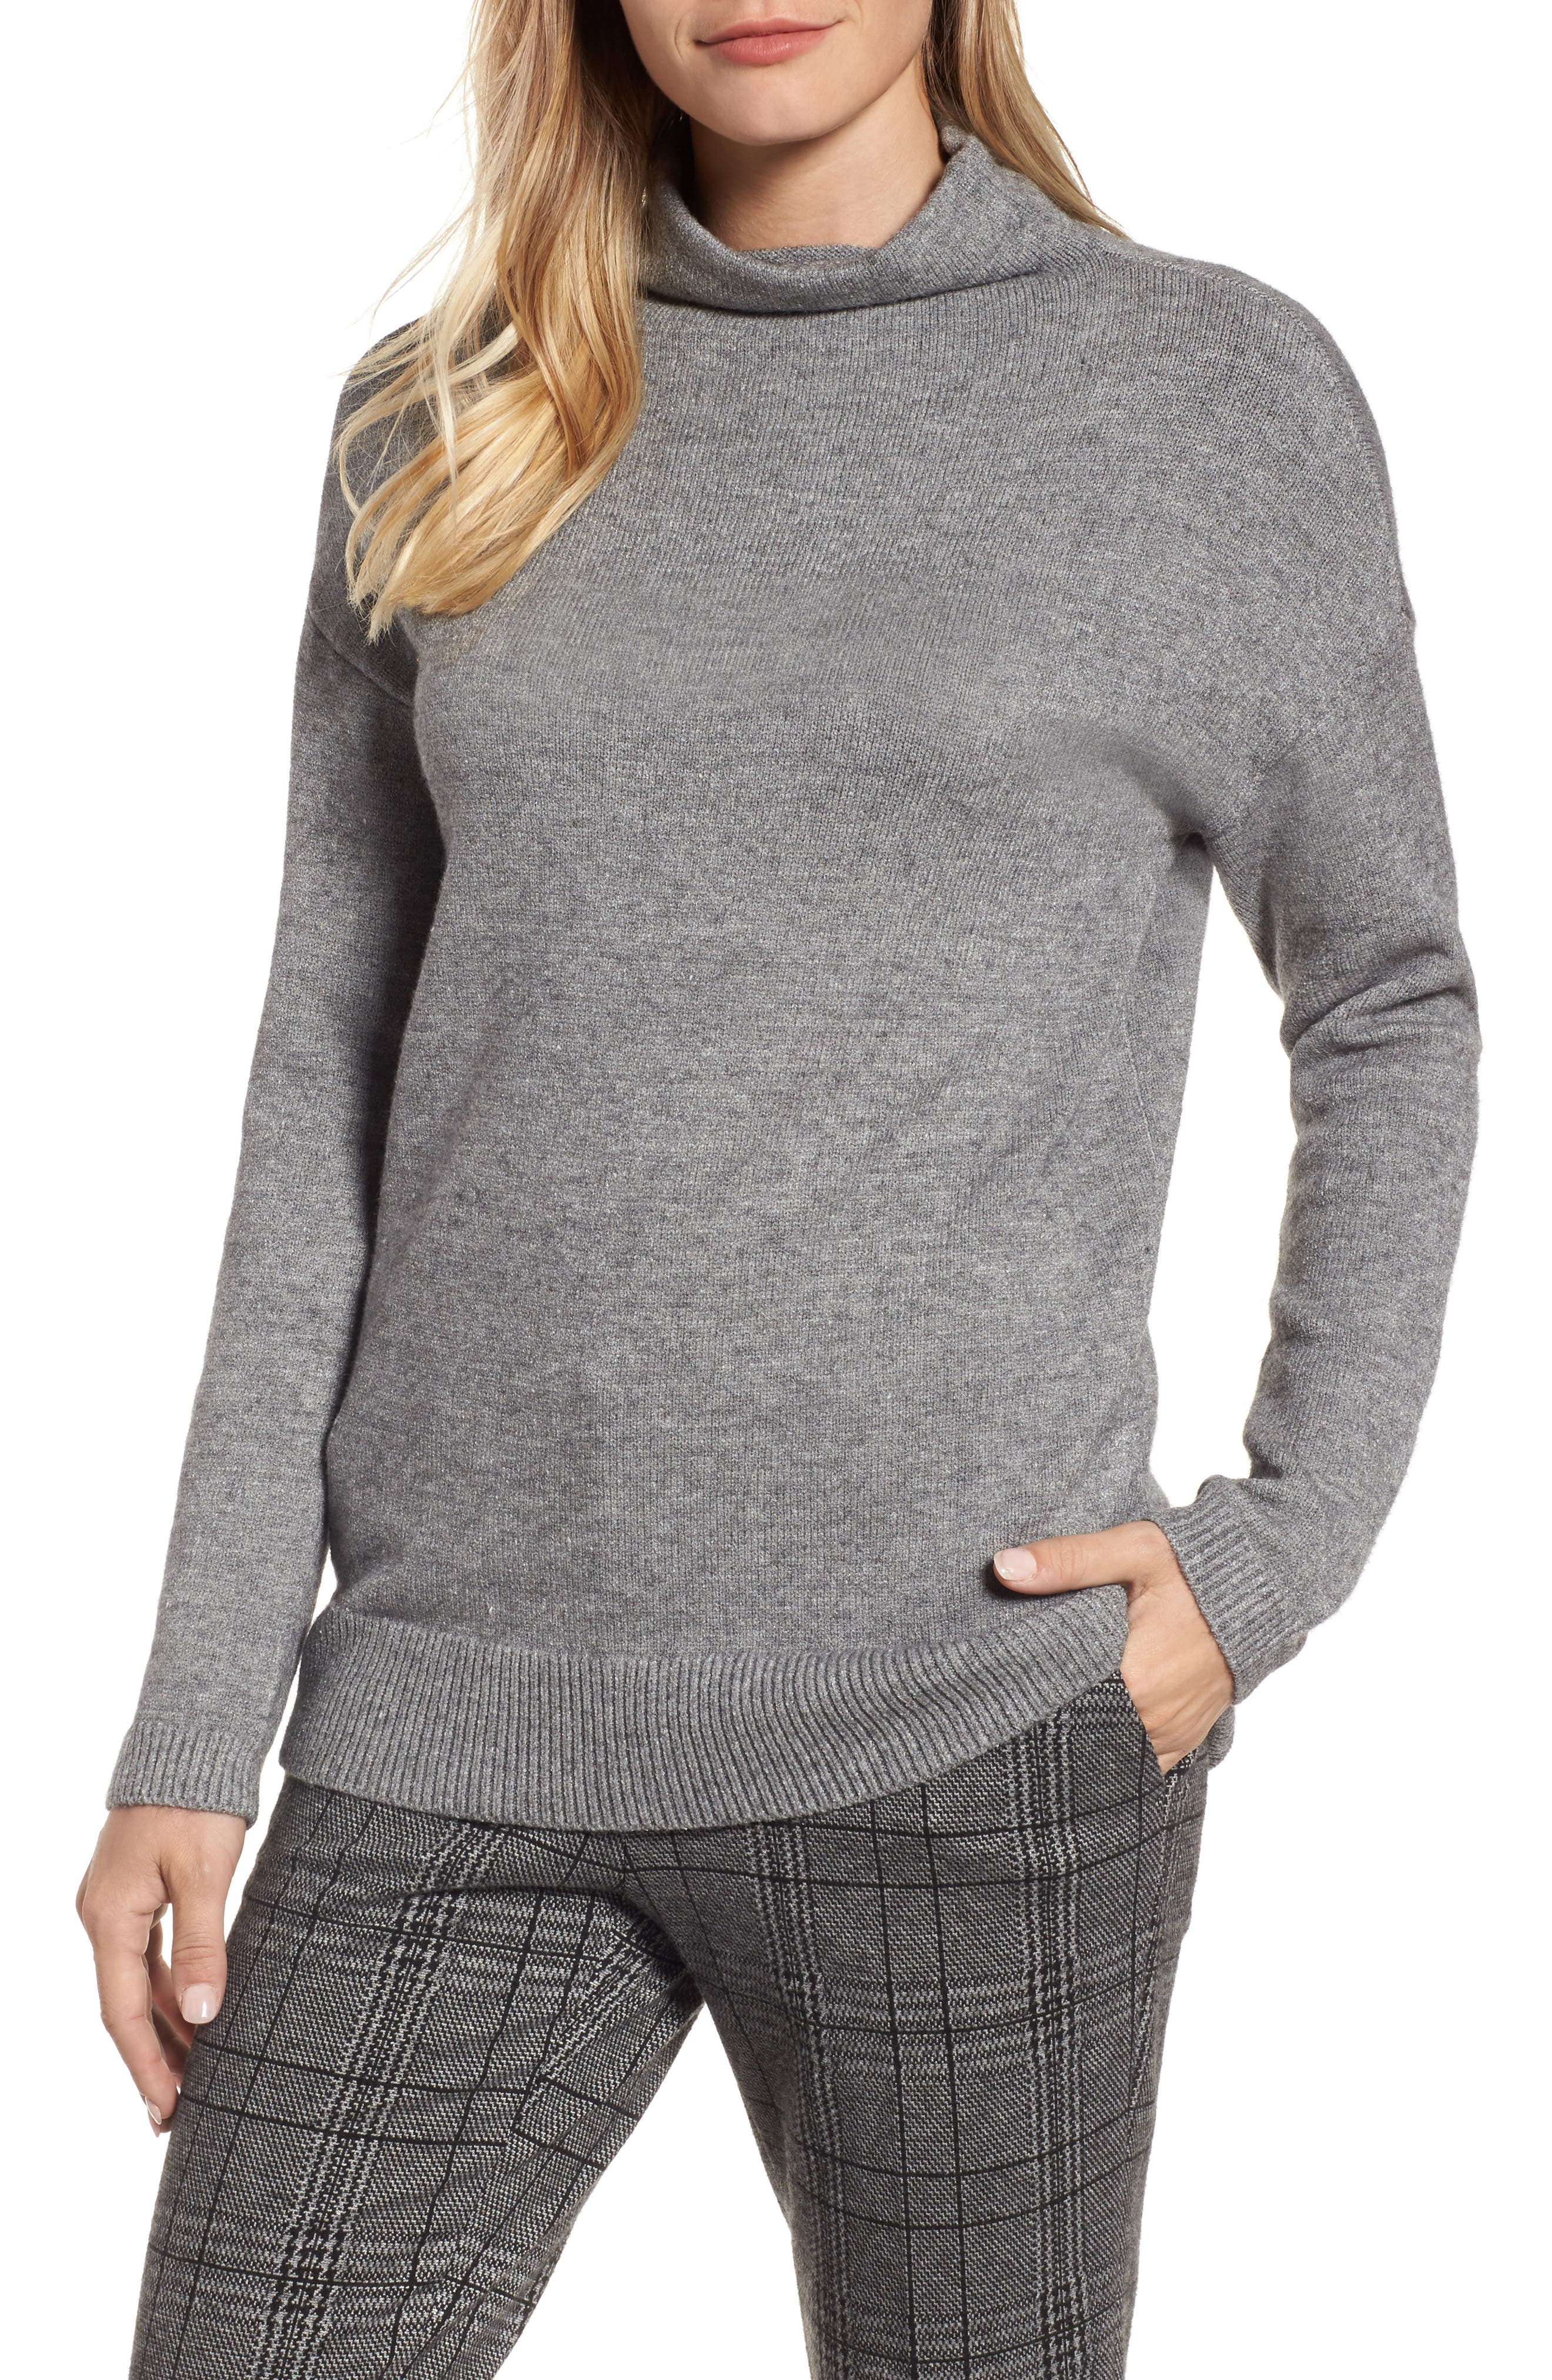 RD Style Funnel Neck Sweater,                             Main thumbnail 1, color,                             030